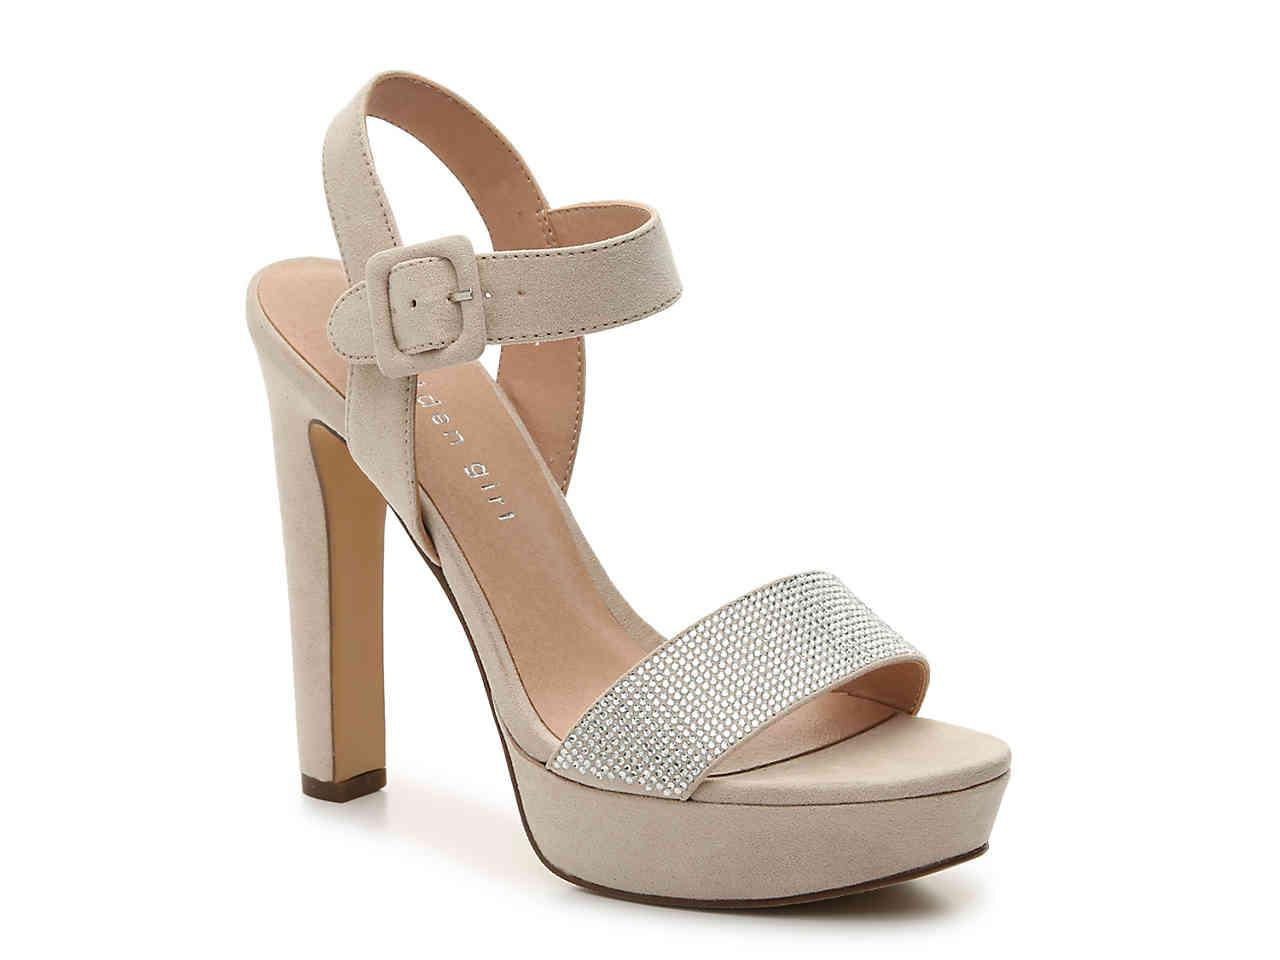 53bc7f8faab2 Lyst - Madden Girl Rollo Platform Sandal in Natural - Save 20%